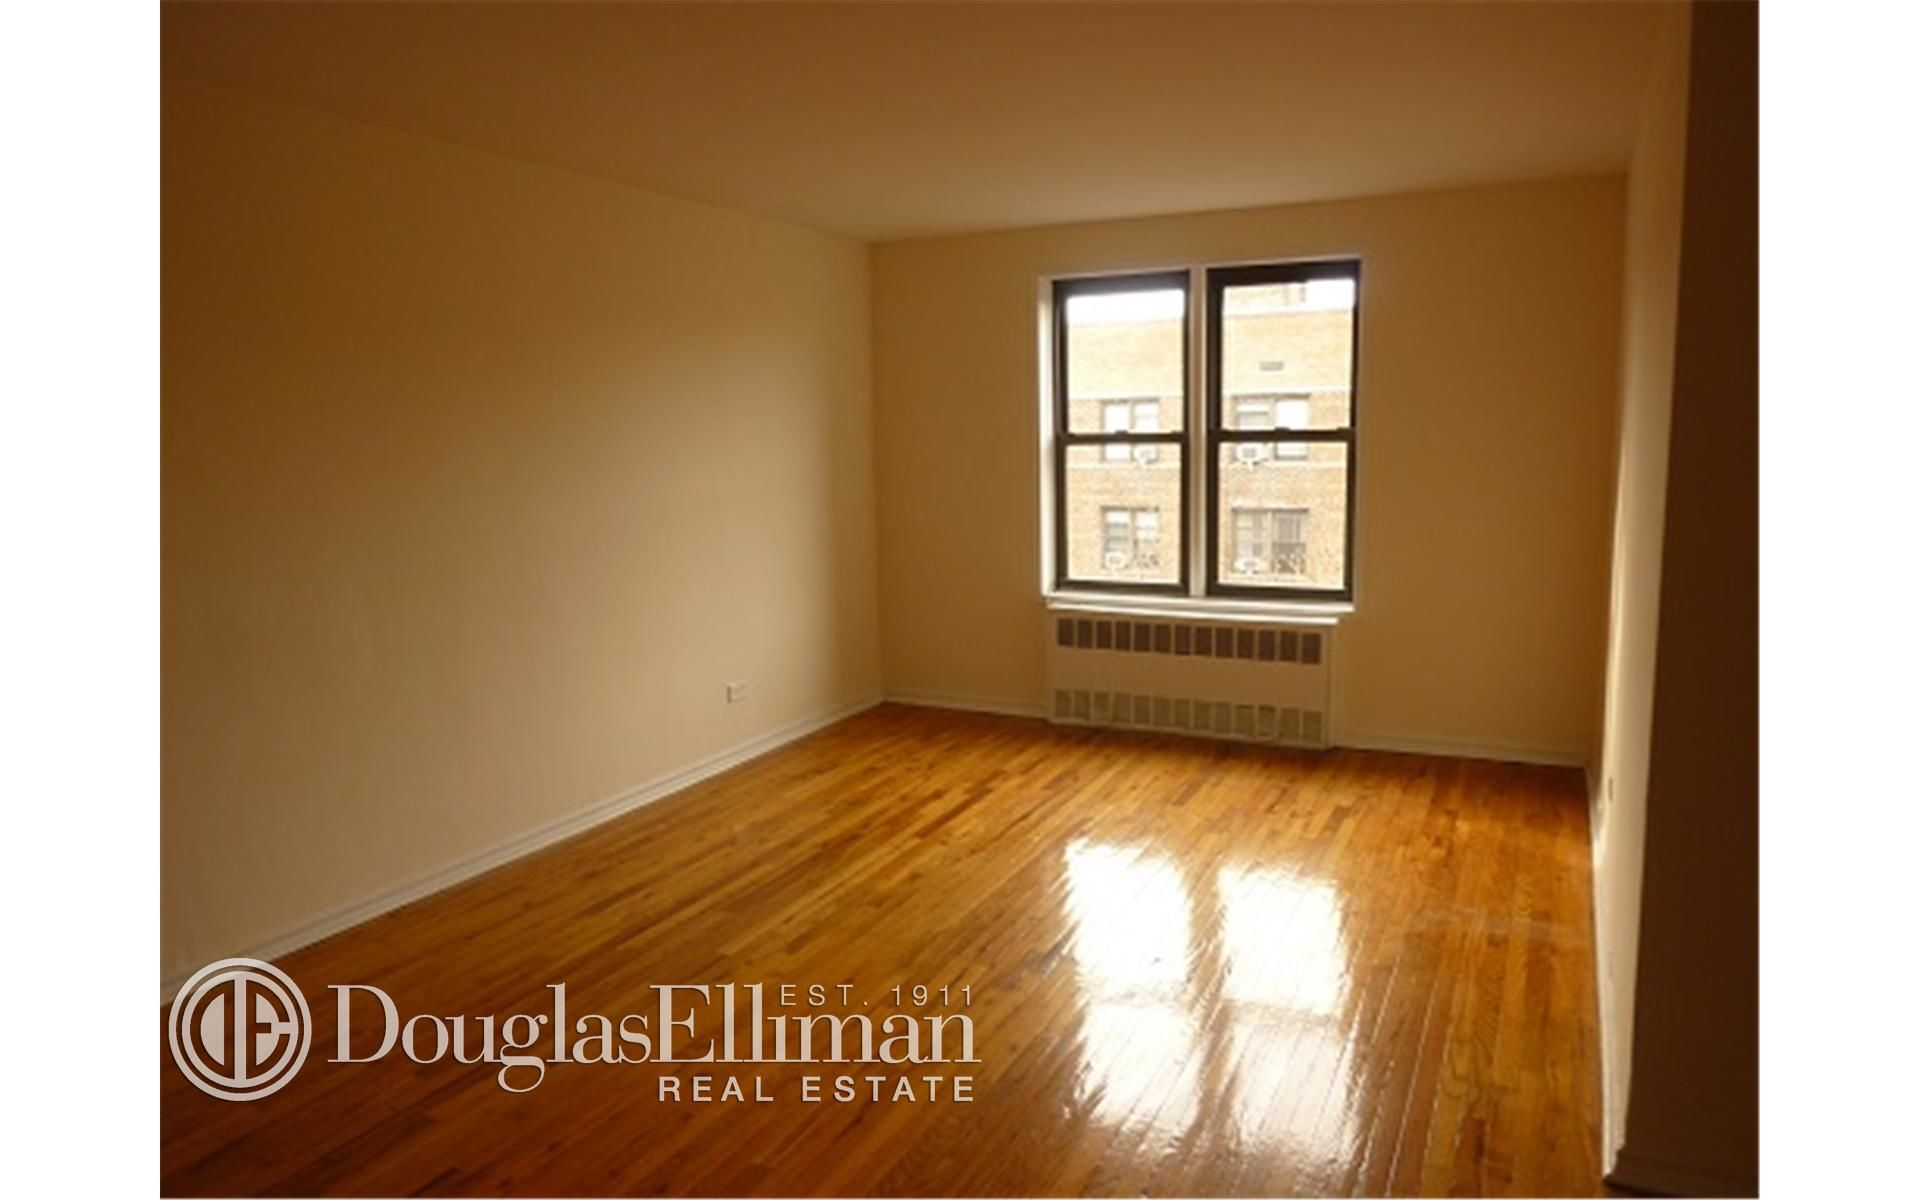 285 E 35th St, APT 7F Photo 1 - ELLIMAN-2322830